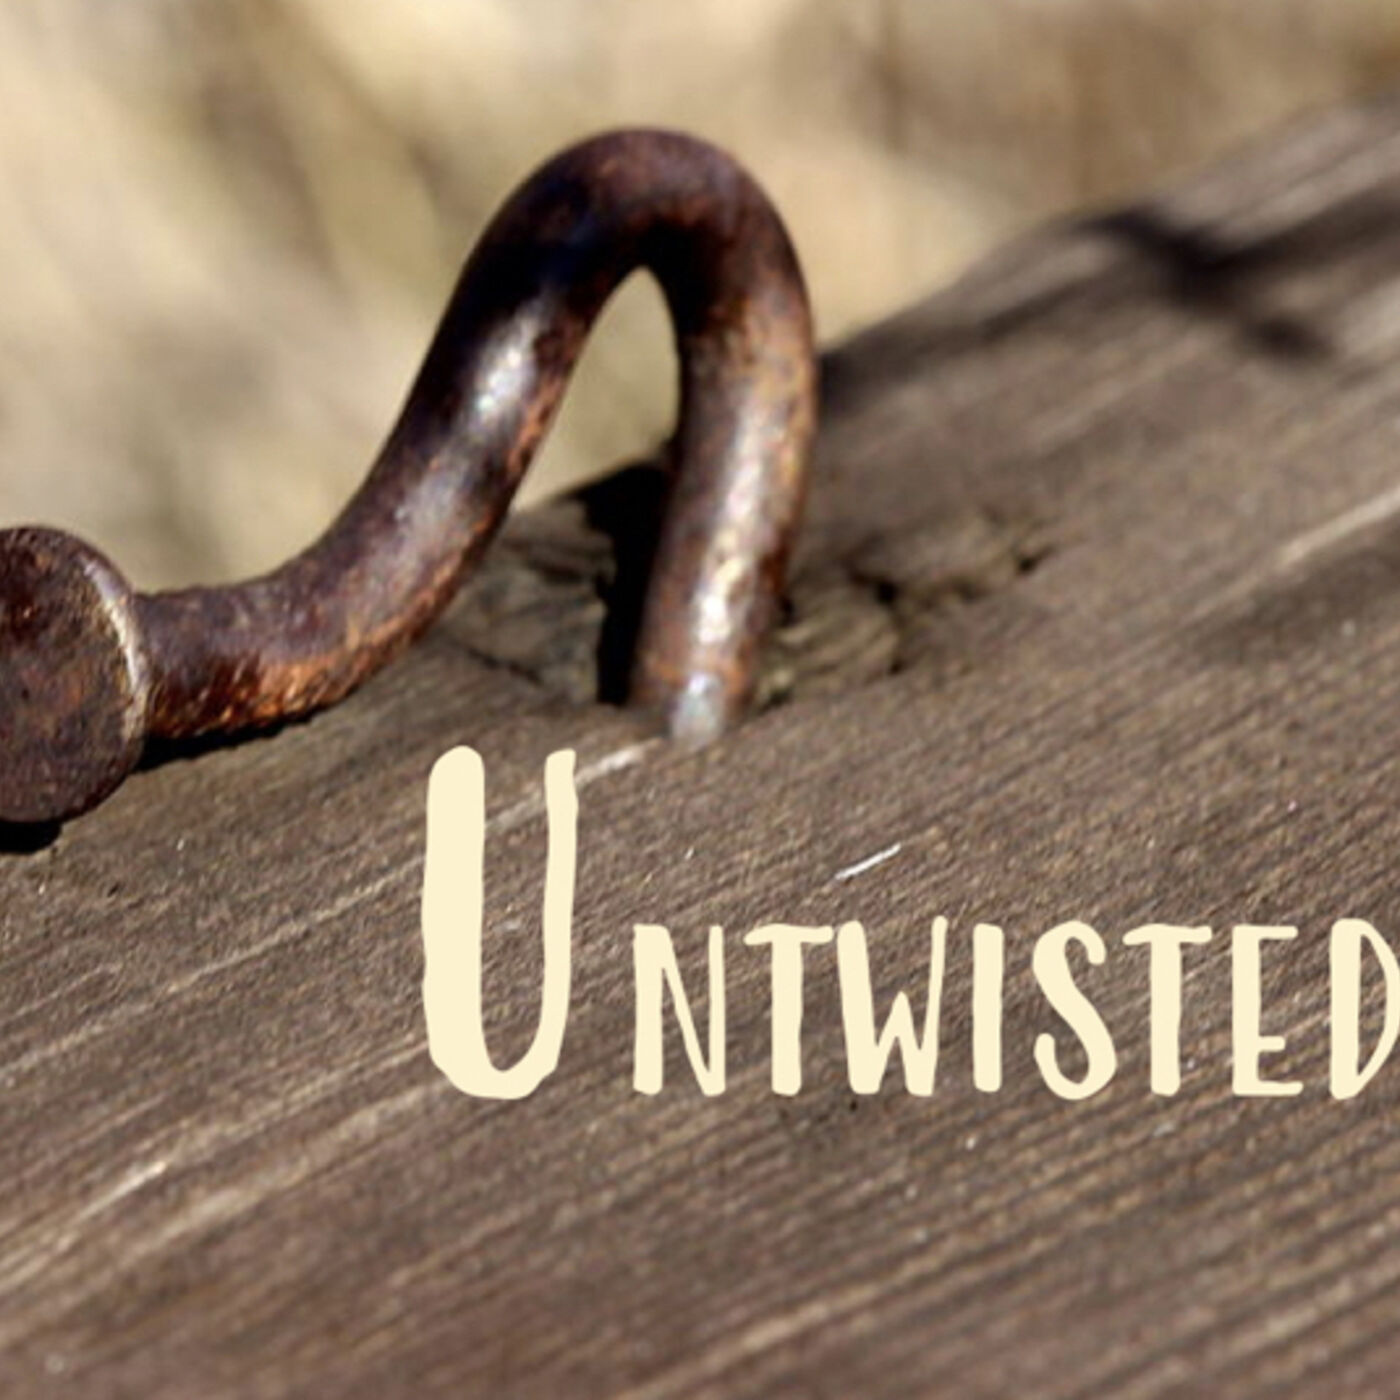 Untwisted: Already In You